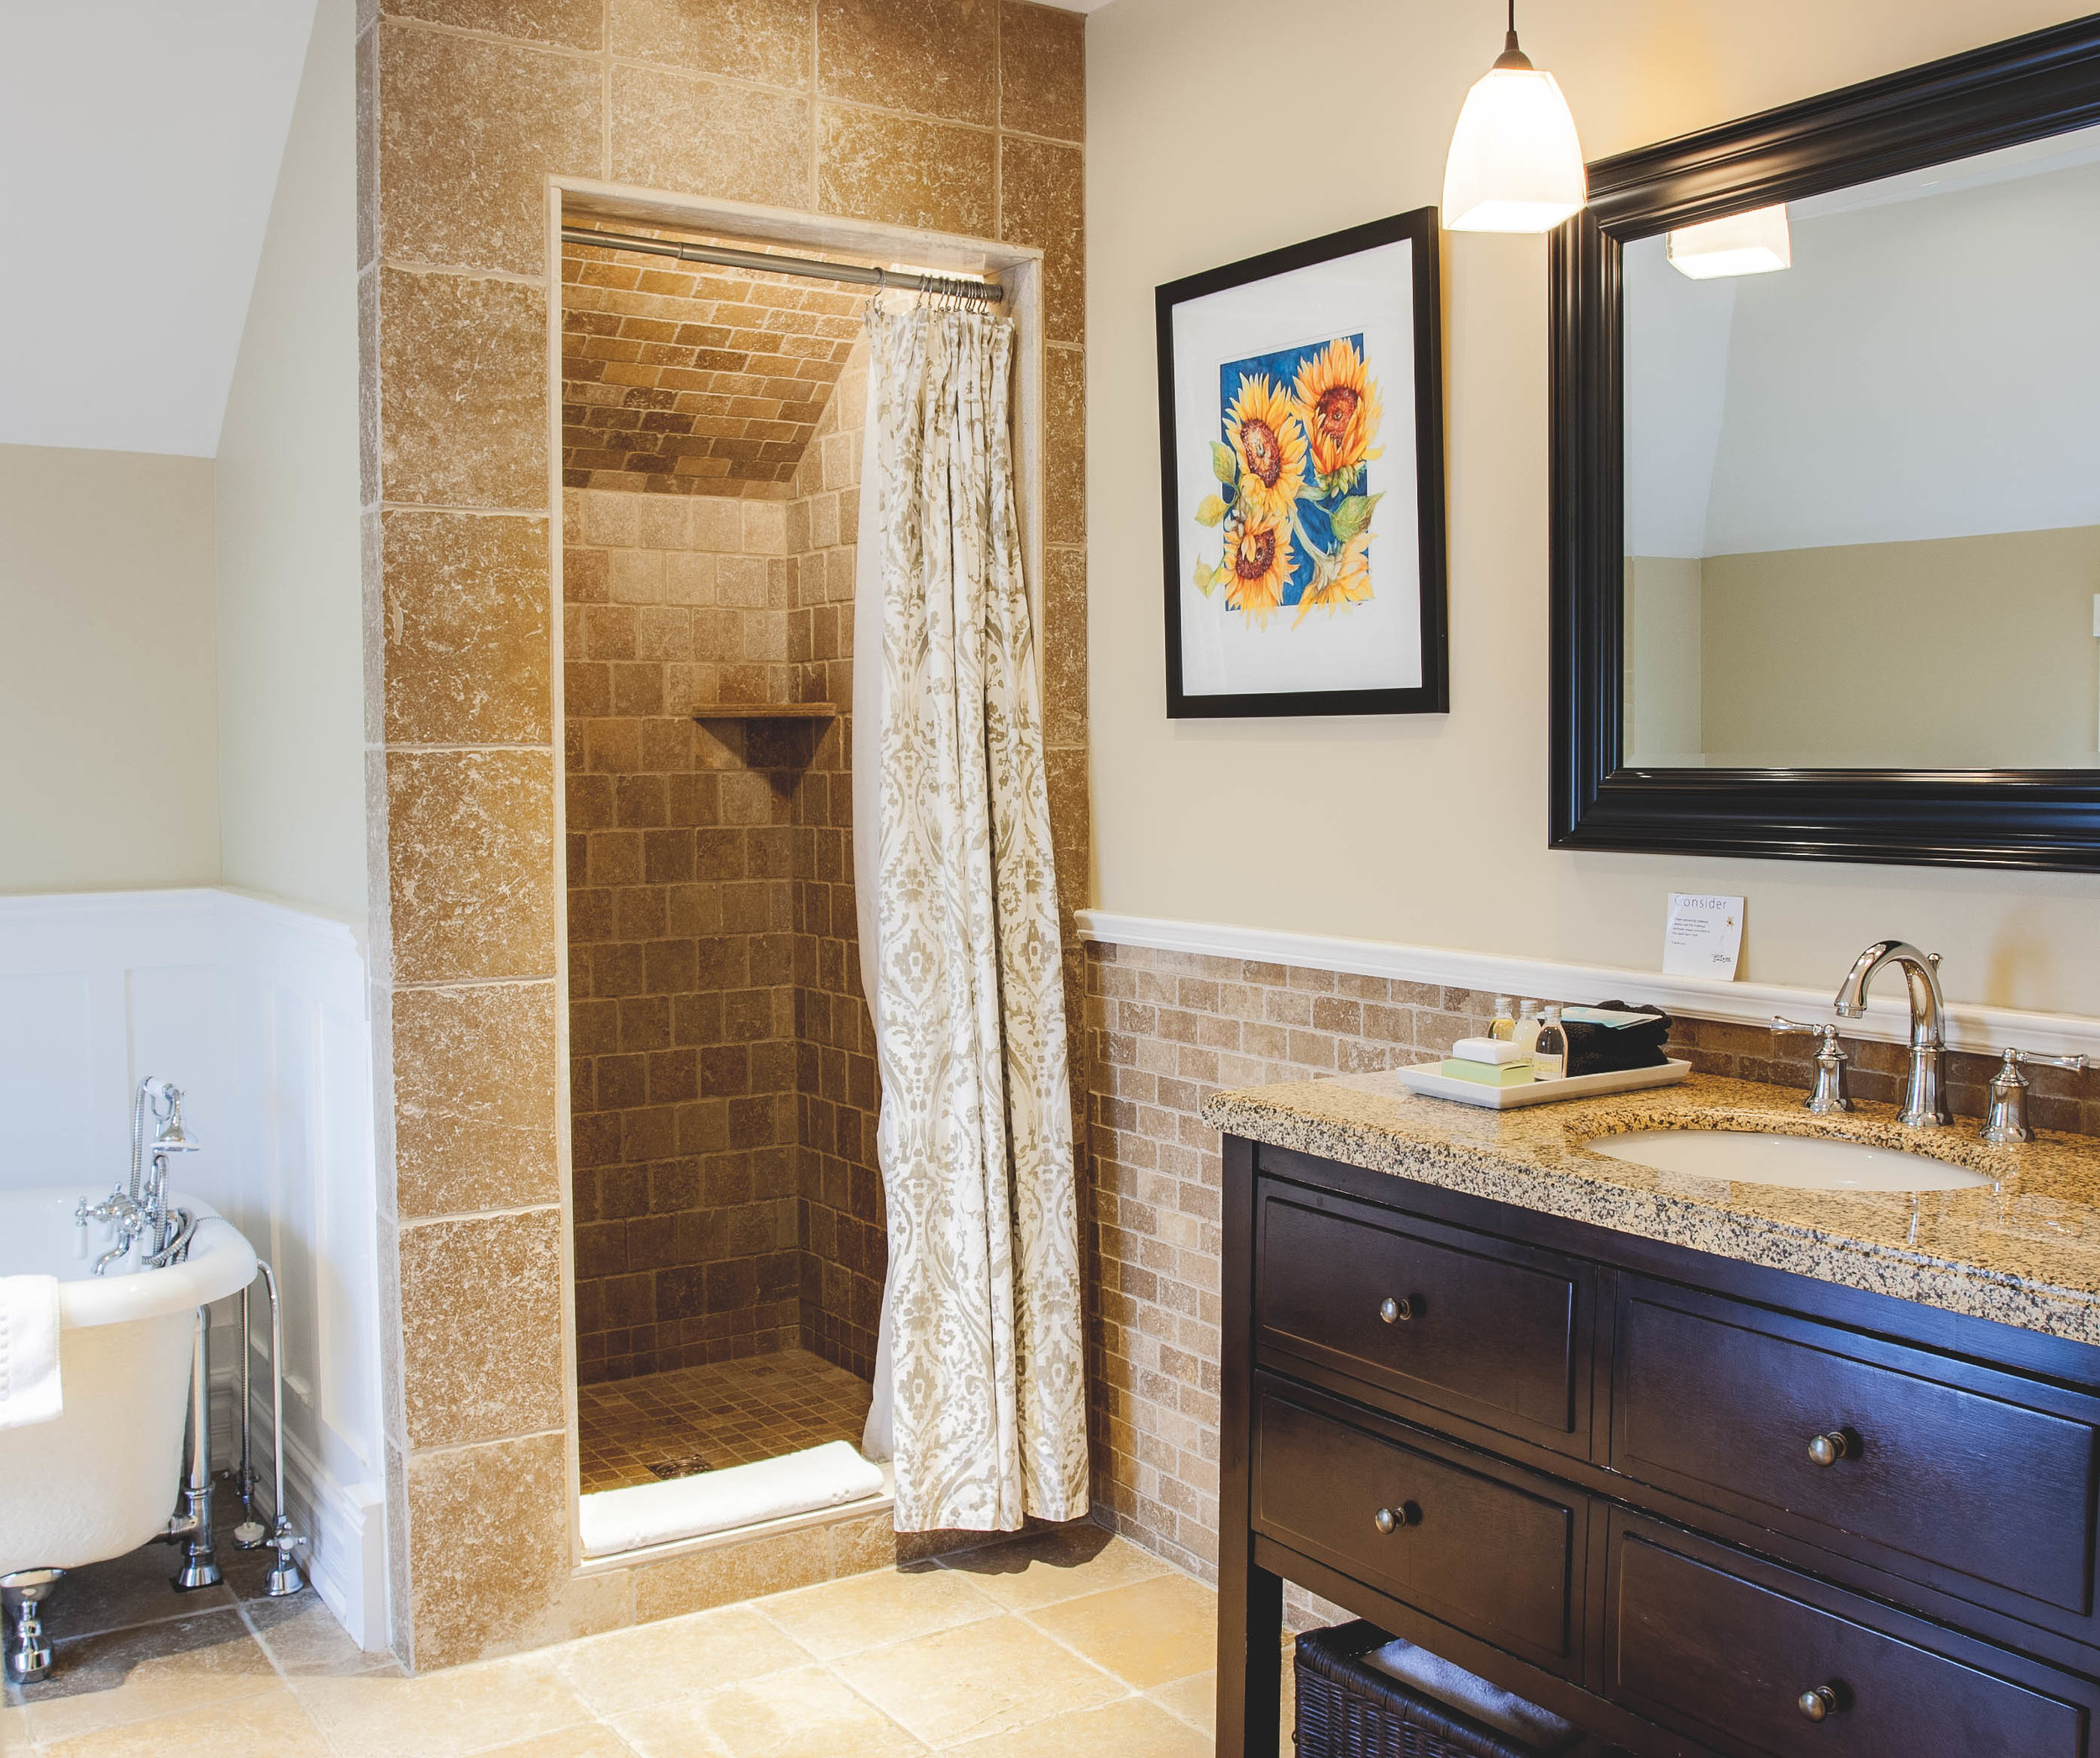 interior suite bath-.jpg